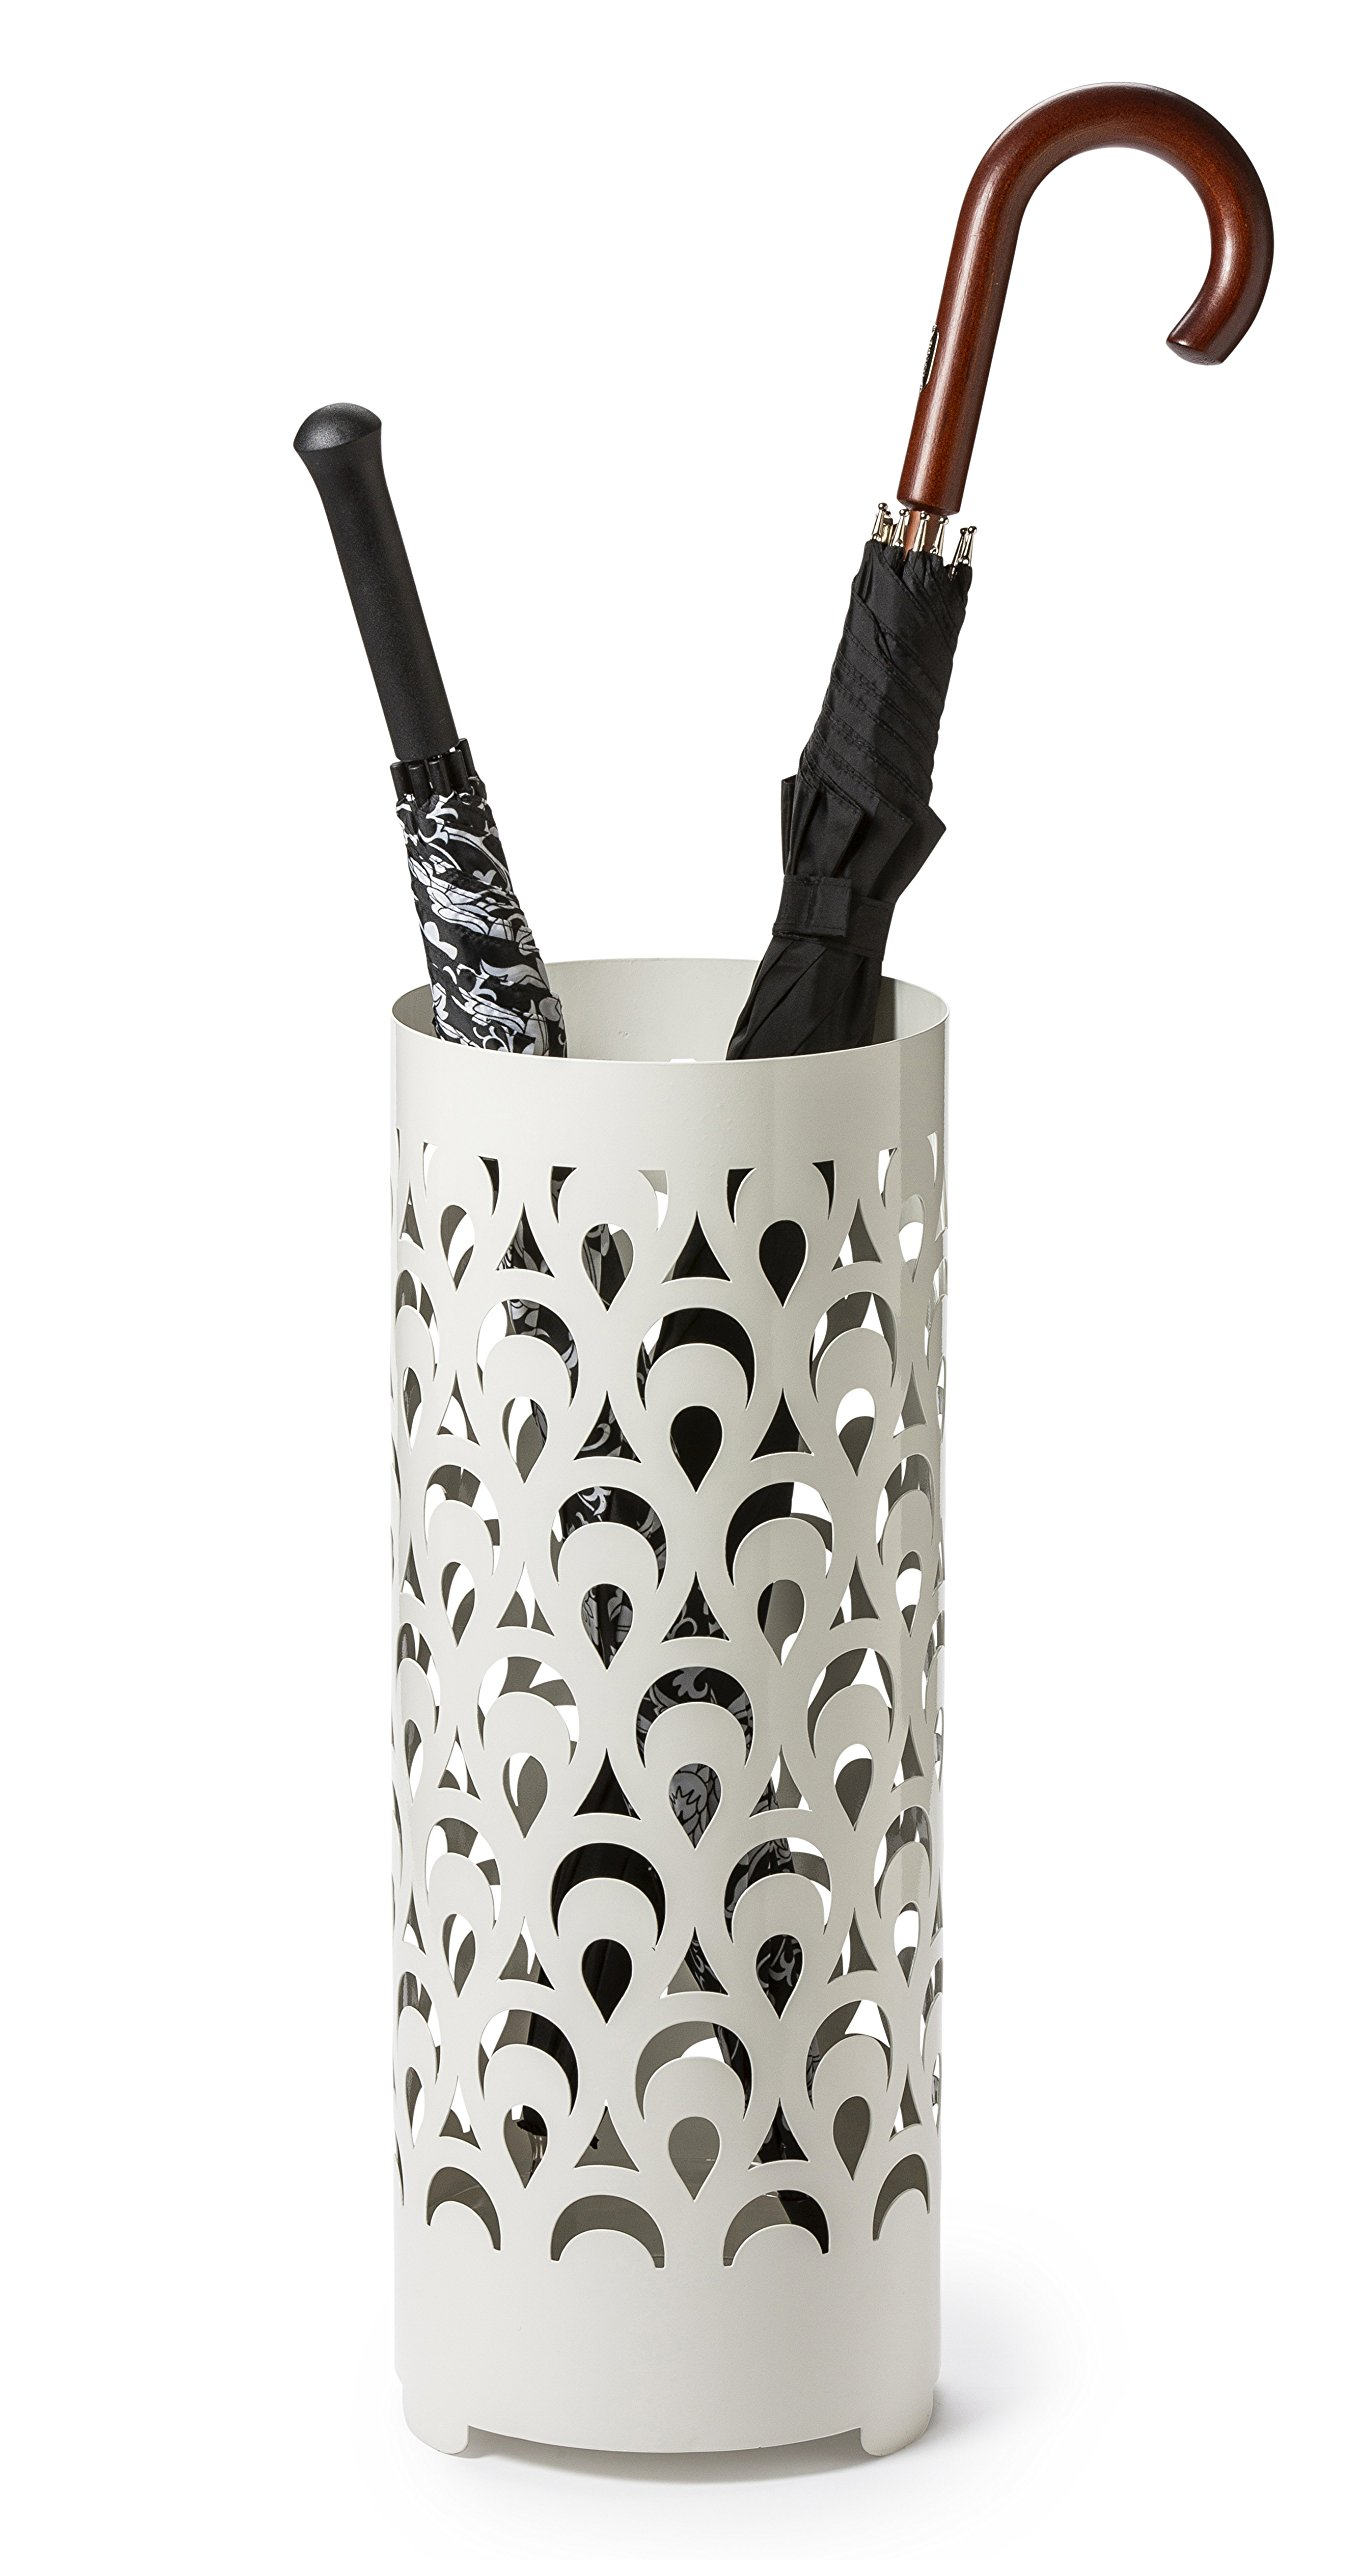 Mango Steam Tall Round Umbrella Holder 21.75 Inches Tall (Peacock White) by Mango Steam